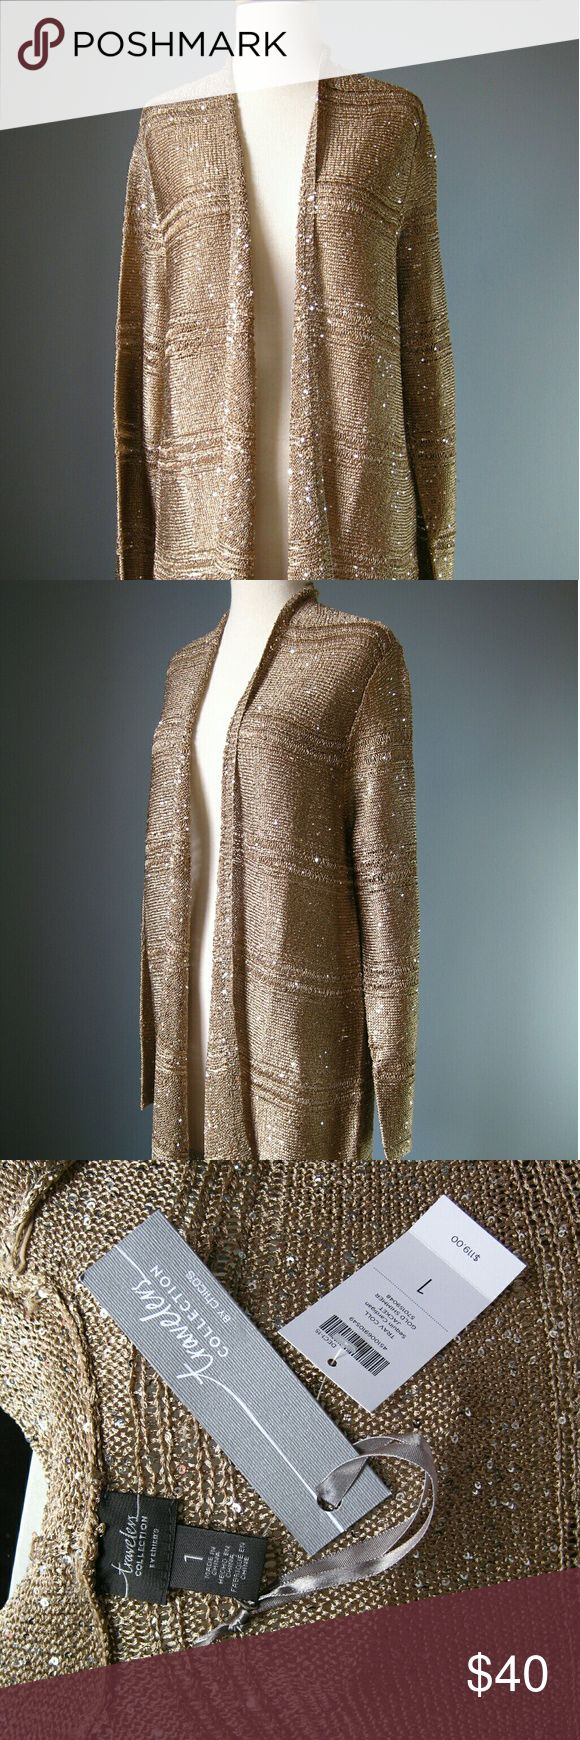 NWT Chili's sparkly gold cardigan Travelers collection sequin cardigan jacket Chico's Sweaters Cardigans